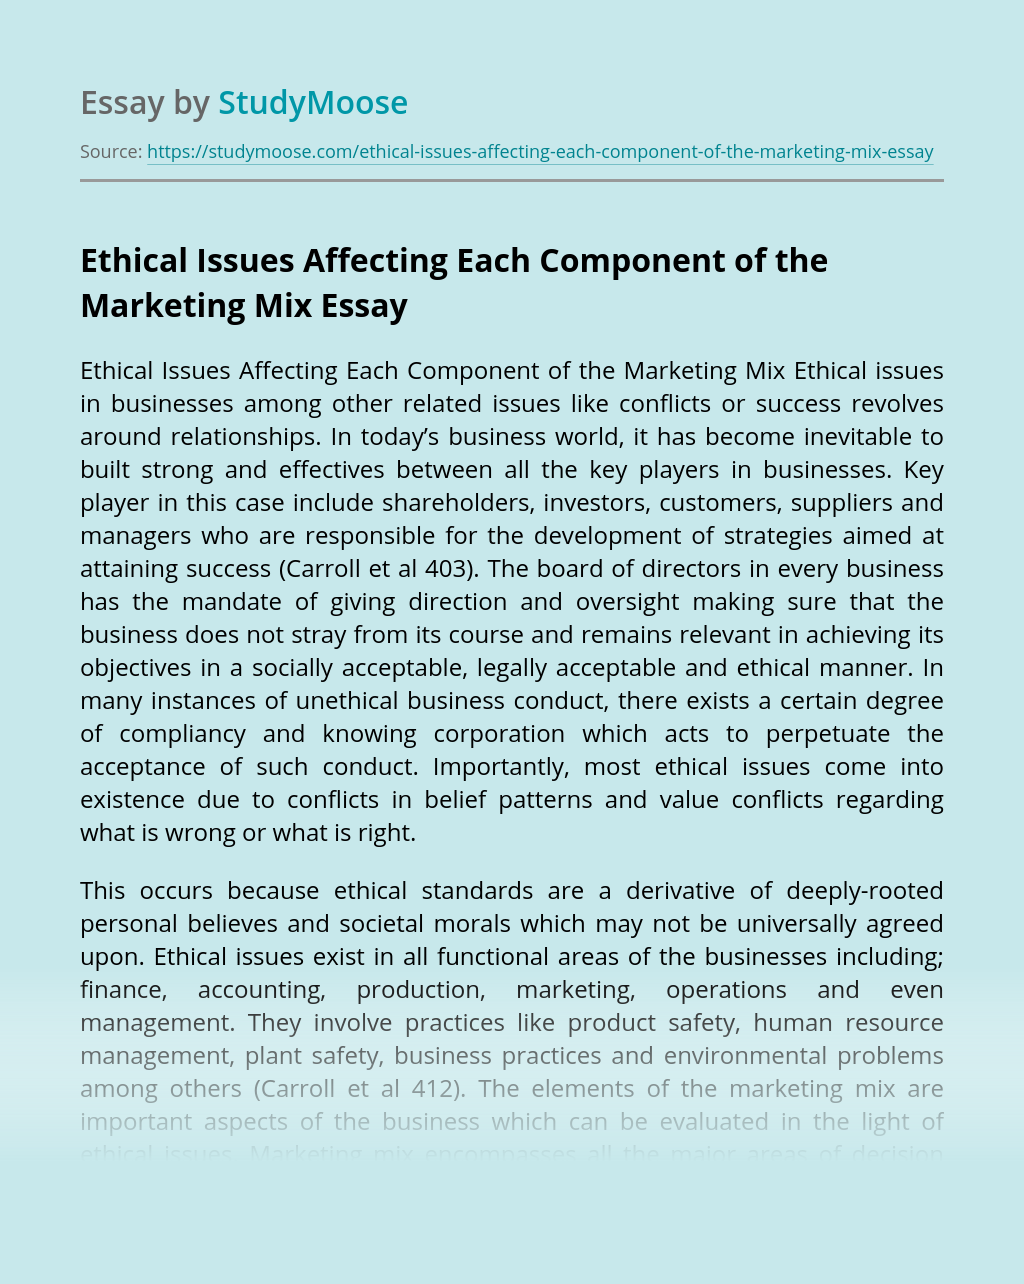 Ethical Issues Affecting Each Component of the Marketing Mix